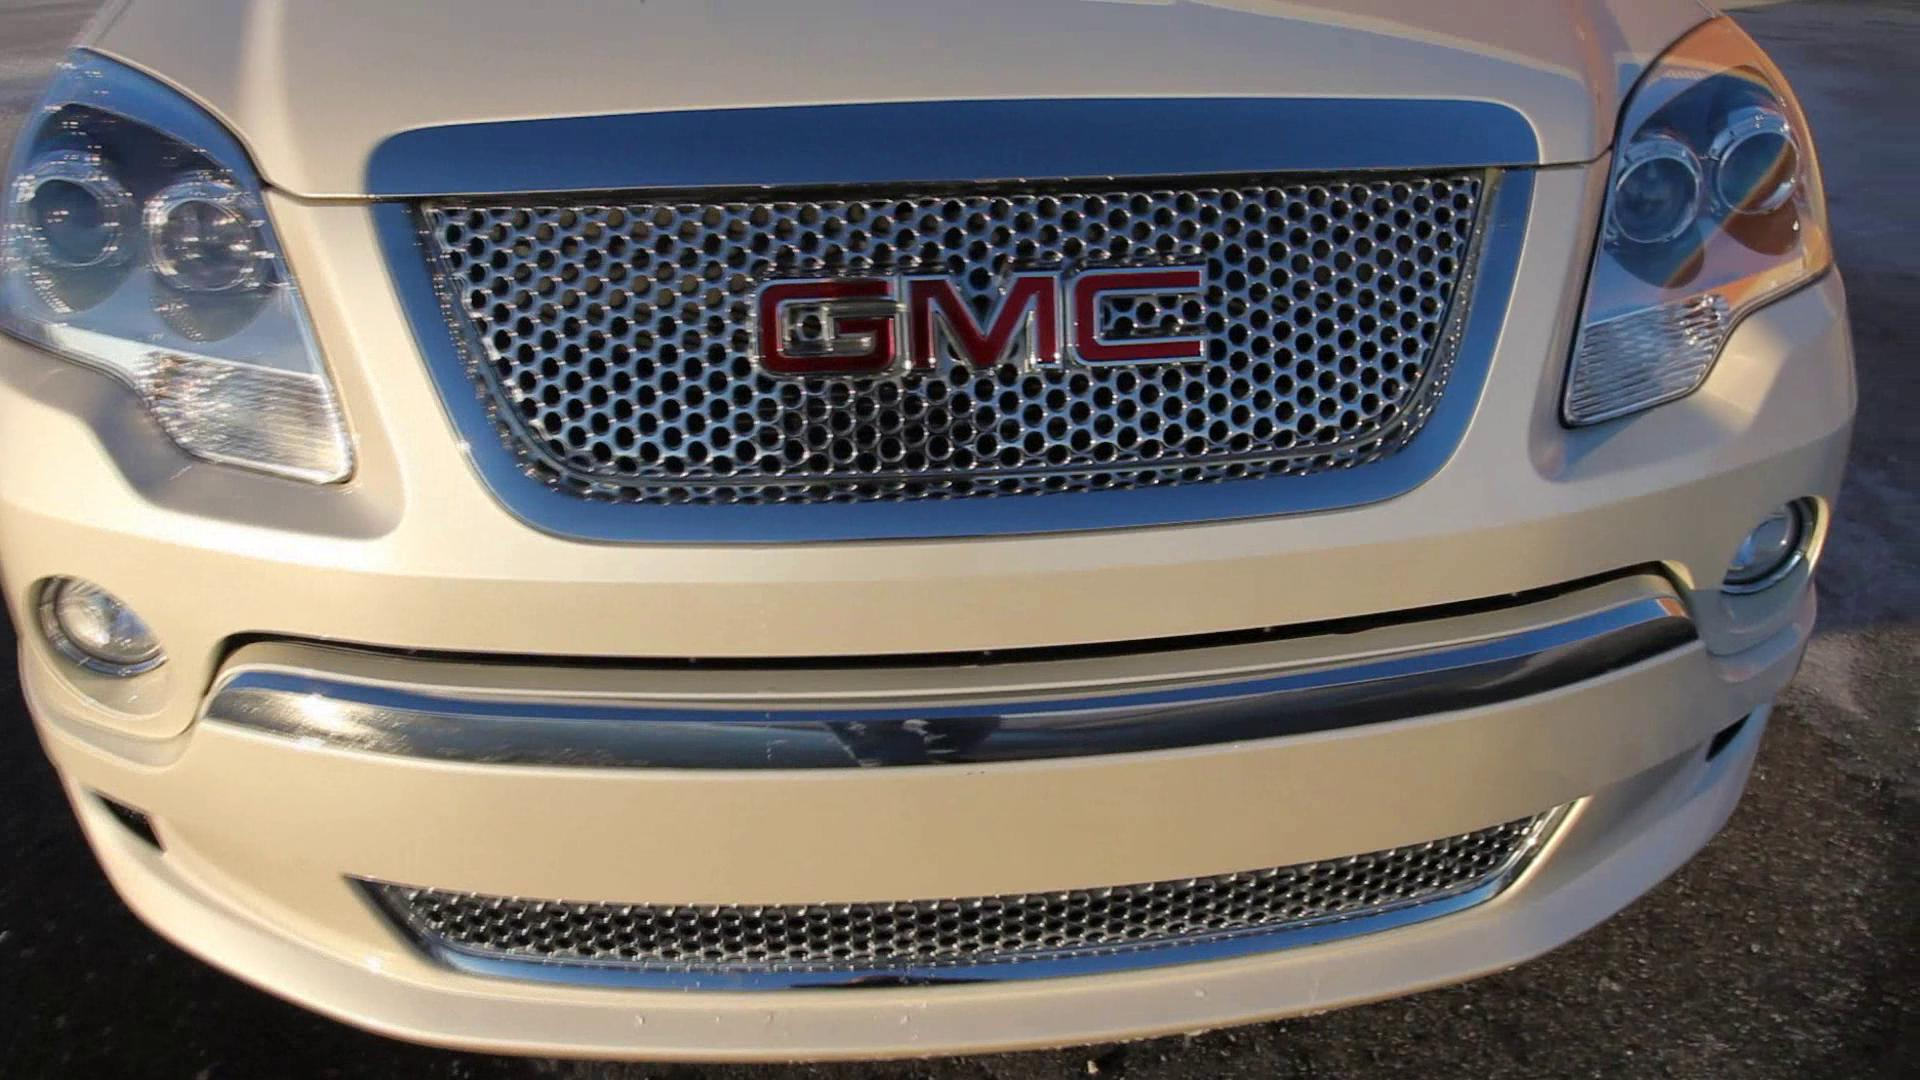 2011 GMC Acadia Denali Exterior Views